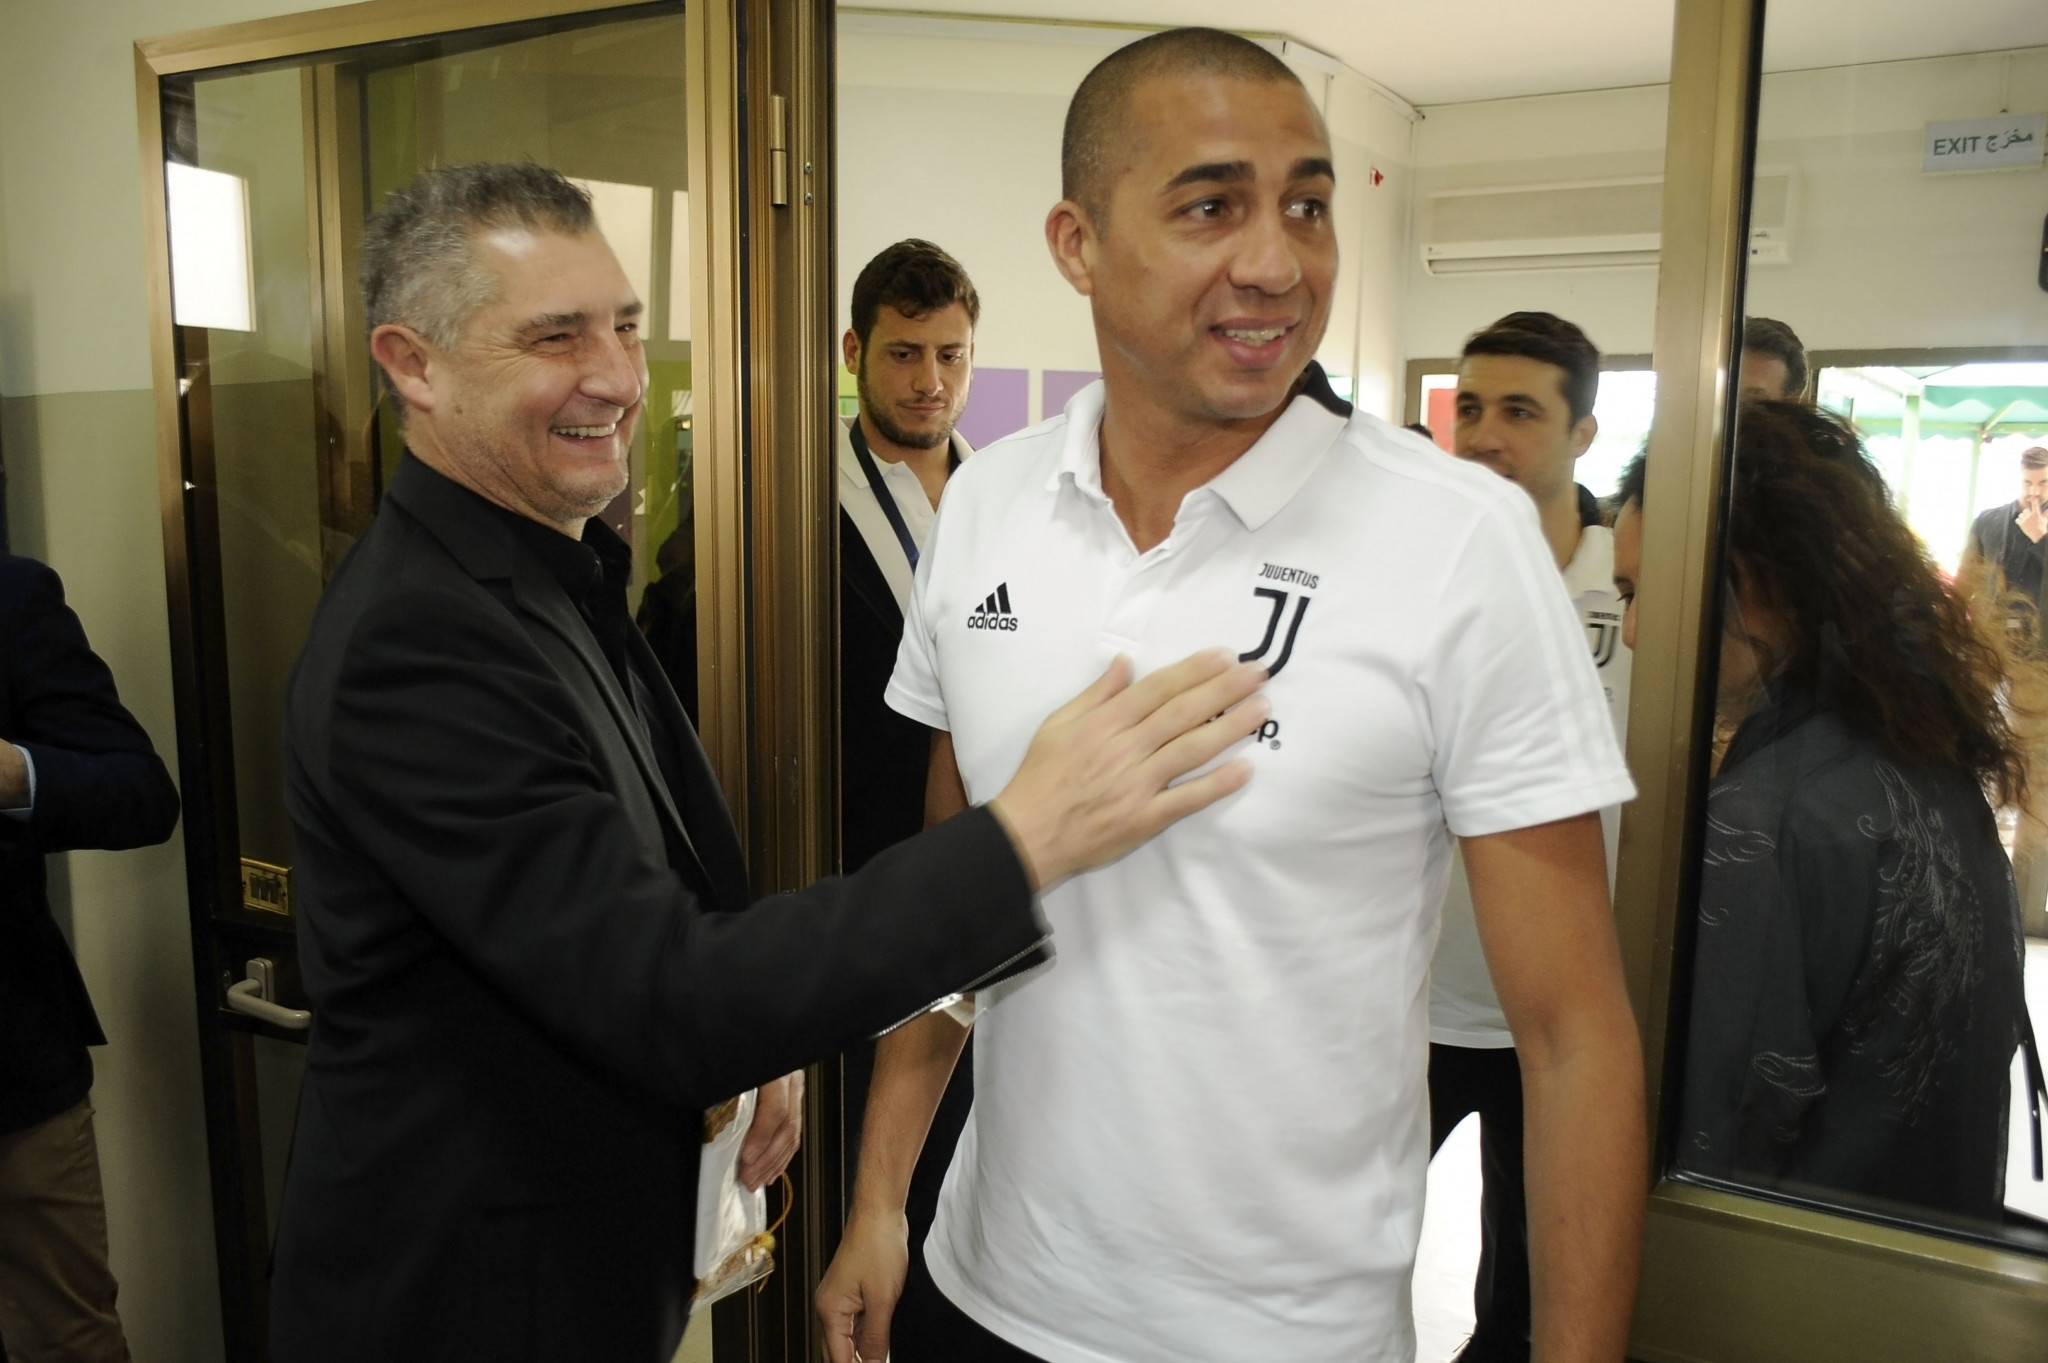 A legends match featuring France's Euro 2000 winner David Trezeguet is among the highlights of the one year to go celebrations for an event set to take place across the continent ©Getty Images